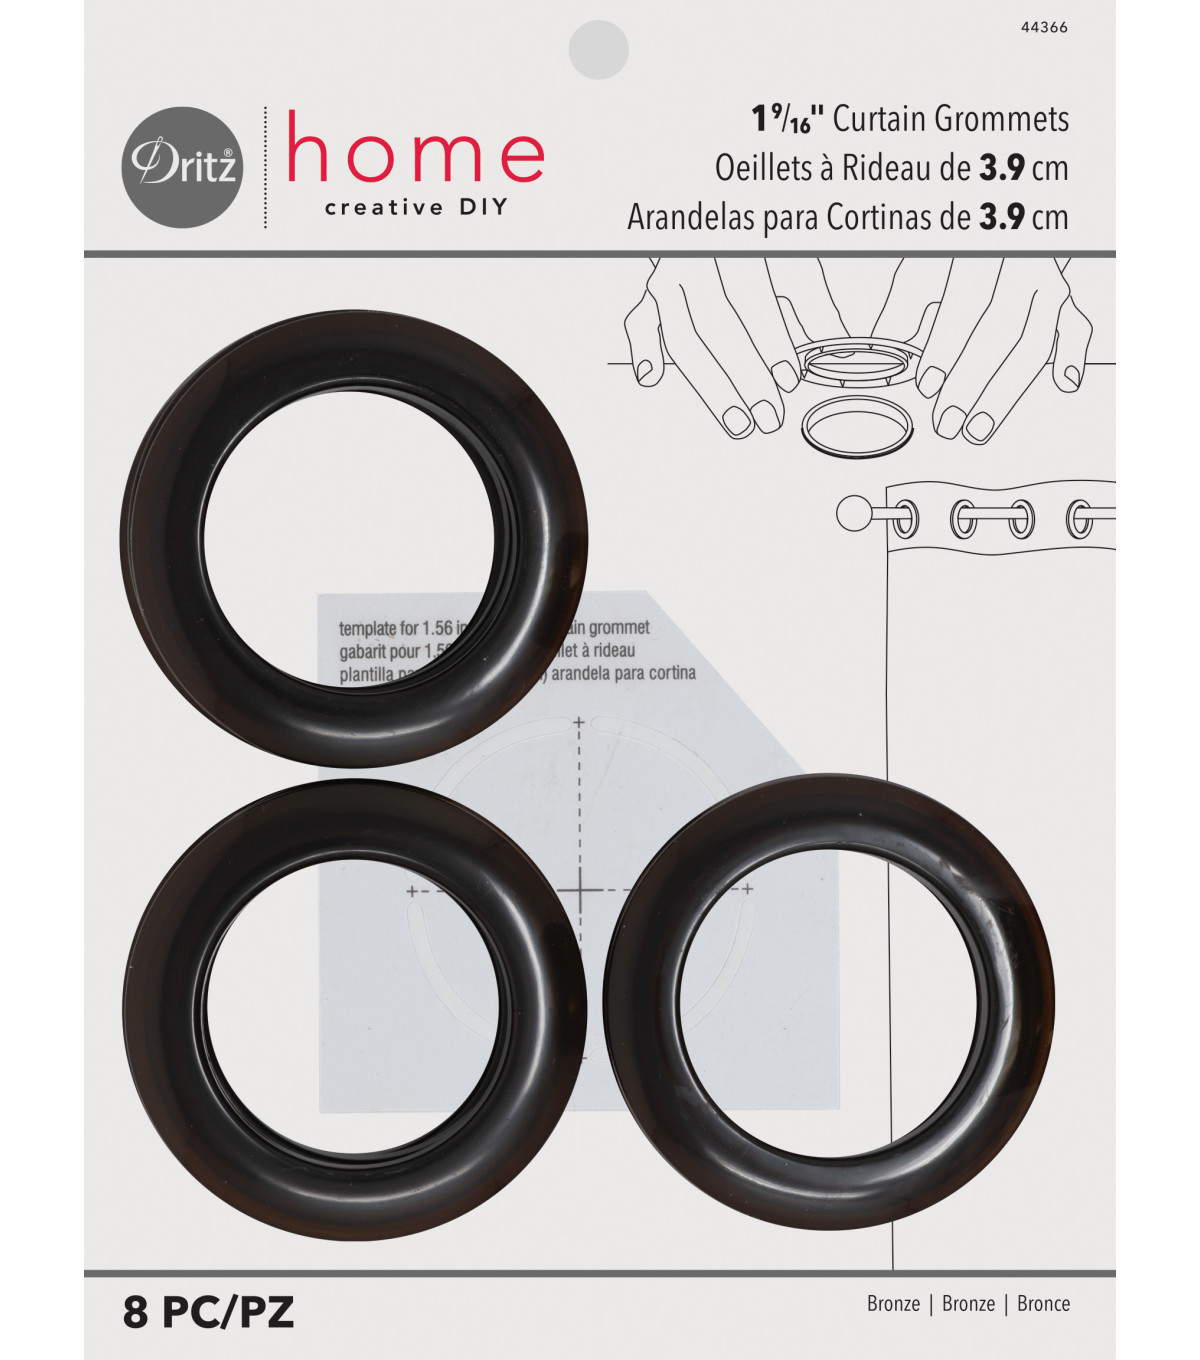 curtain grommet to grommets make curtains handmade diy and hgtv how celebrate for design